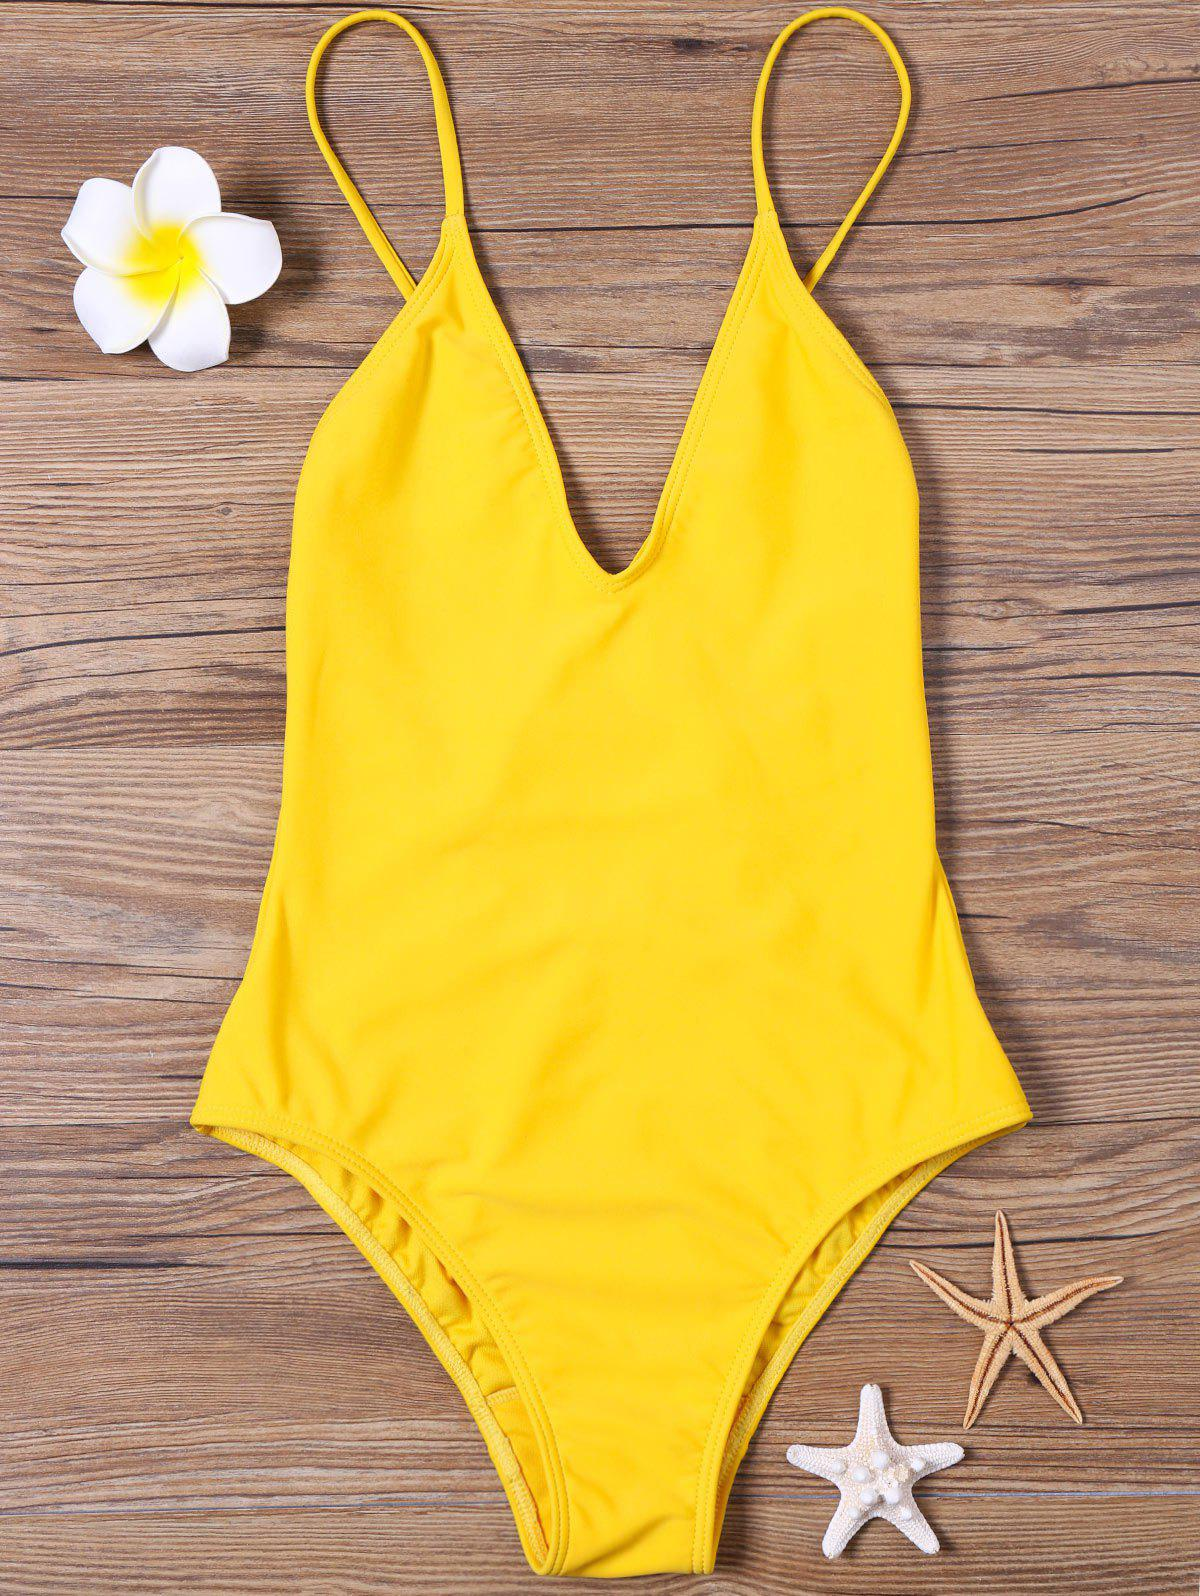 High Cut V Neck One Piece SwimsuitWOMEN<br><br>Size: 2XL; Color: YELLOW; Style: Sexy; Swimwear Type: One Piece; Gender: For Women; Material: Polyester,Spandex; Bra Style: Bralette; Support Type: Wire Free; Neckline: Spaghetti Straps; Pattern Type: Solid; Waist: High Waisted; Elasticity: Elastic; Weight: 0.2500kg; Package Contents: 1 x Swimsuit;